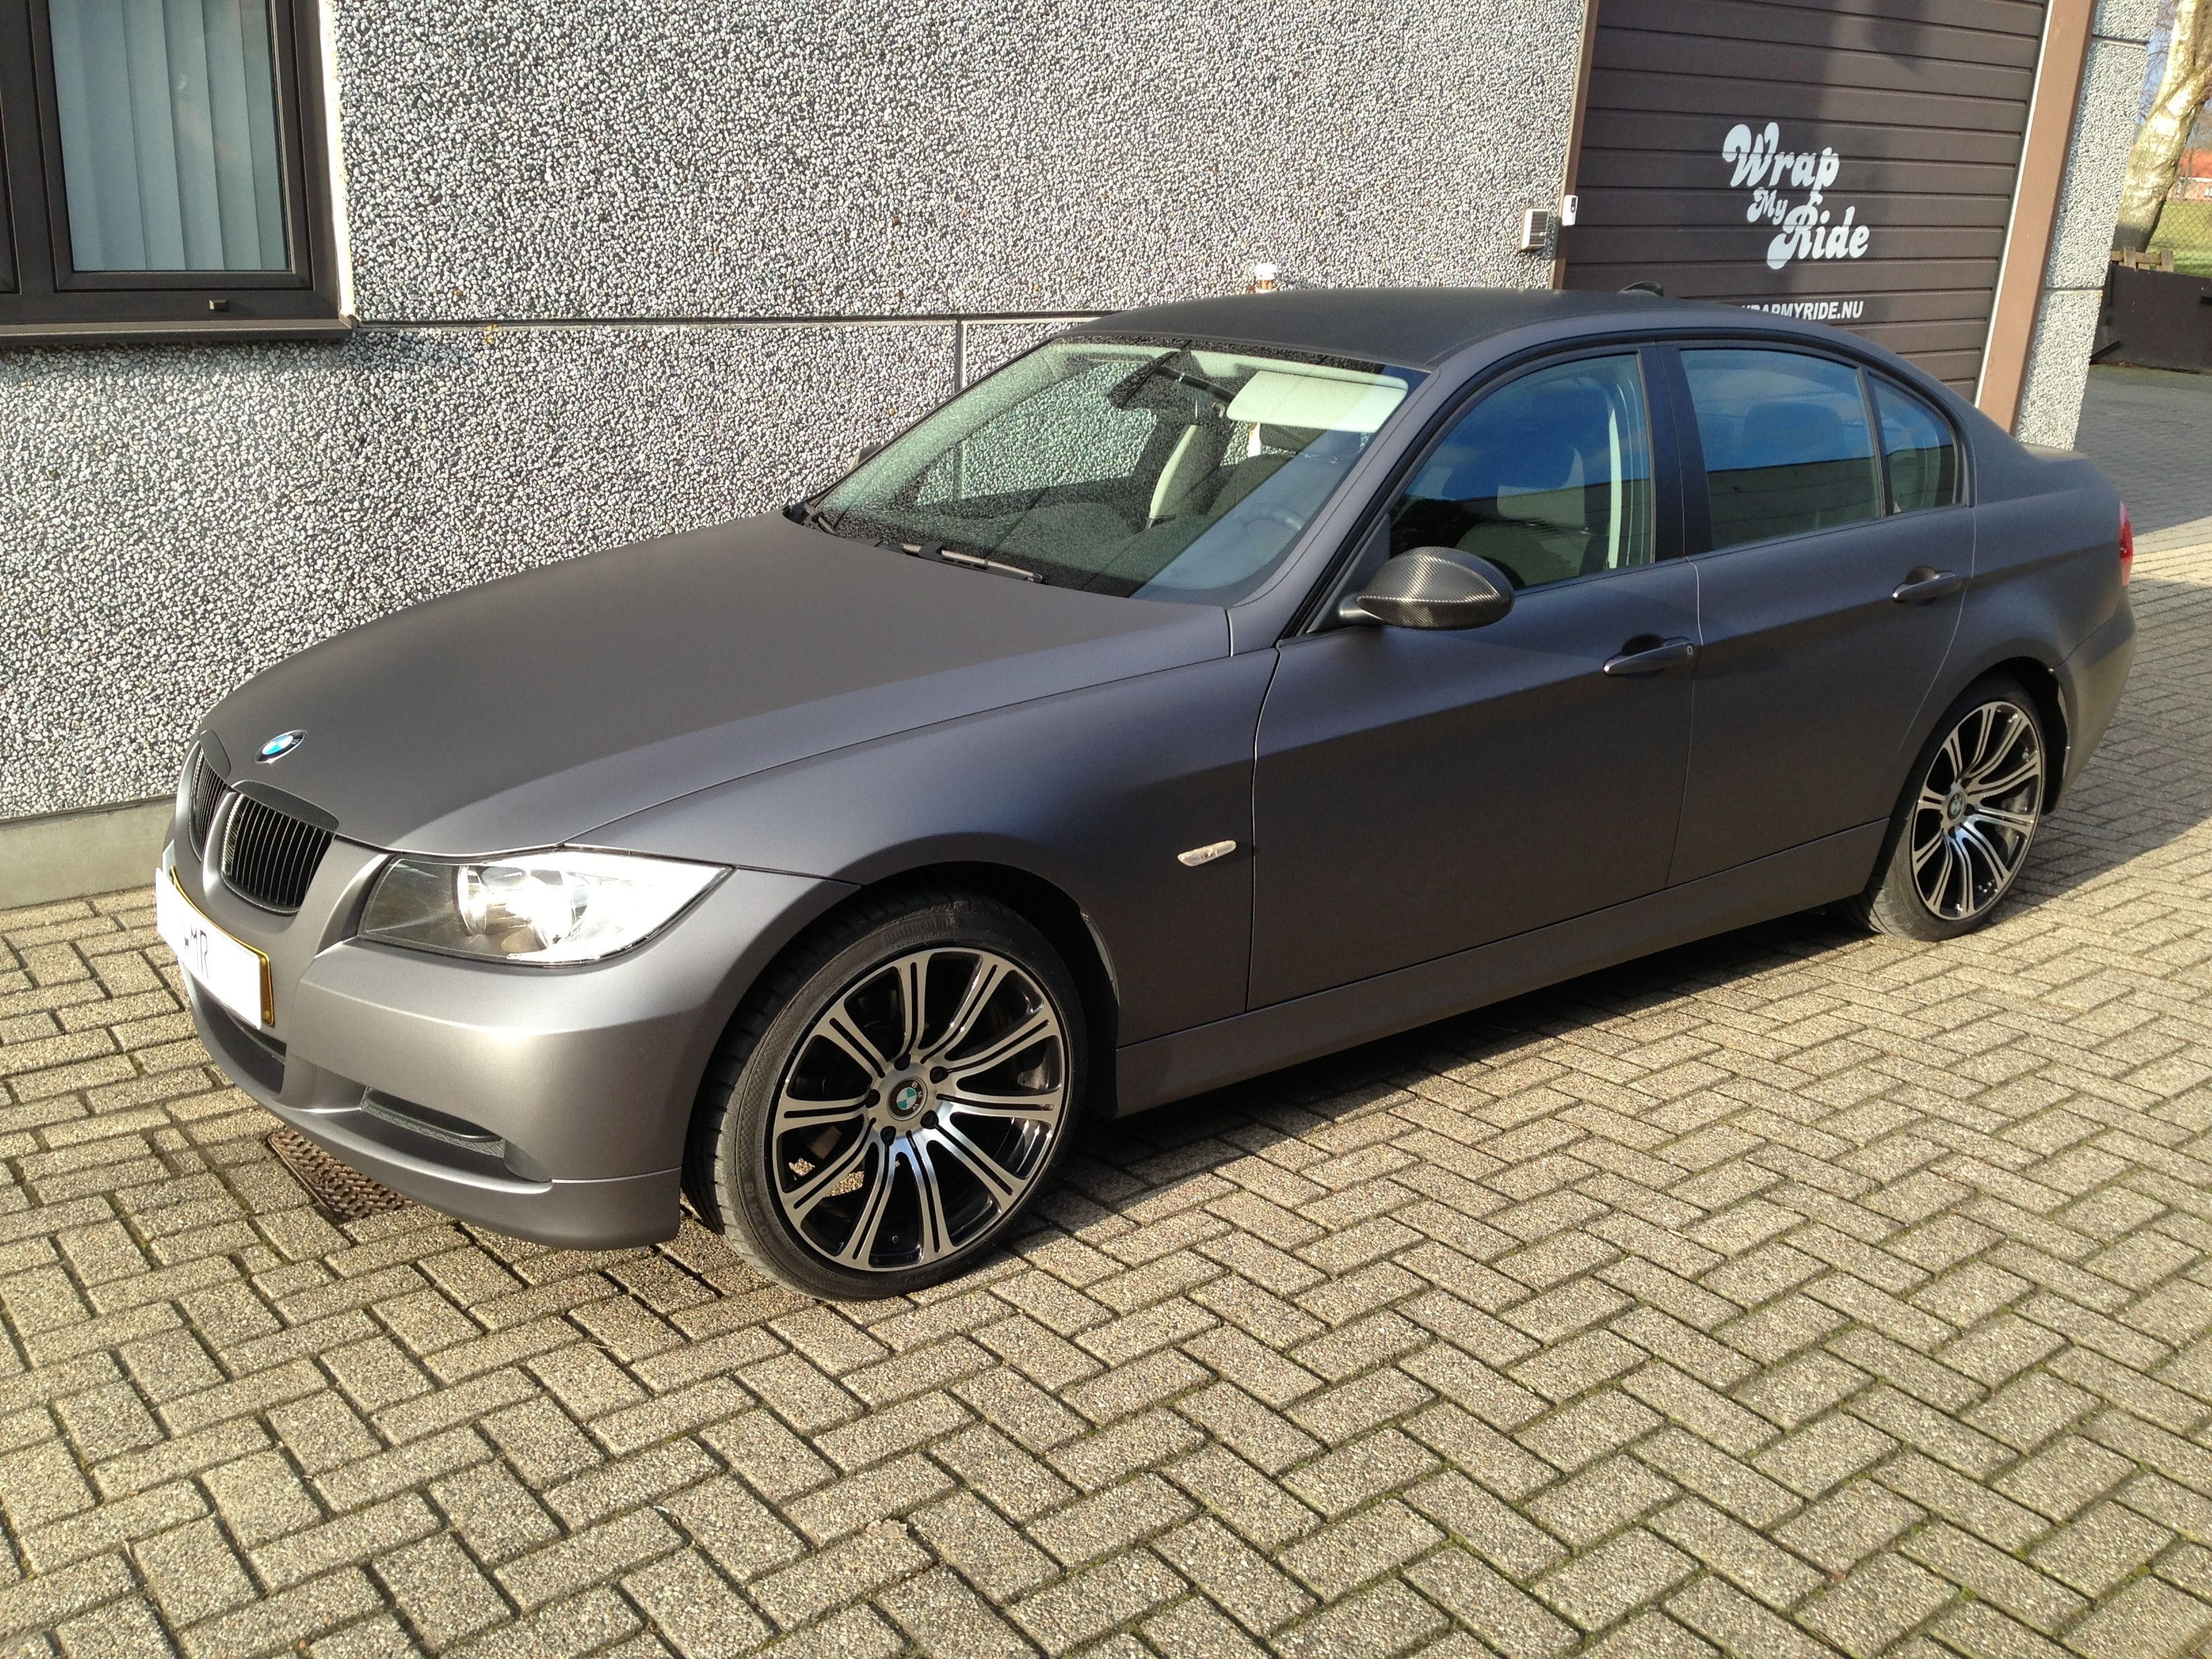 BMW E90 met Gunpowder Wrap, Carwrapping door Wrapmyride.nu Foto-nr:5377, ©2021